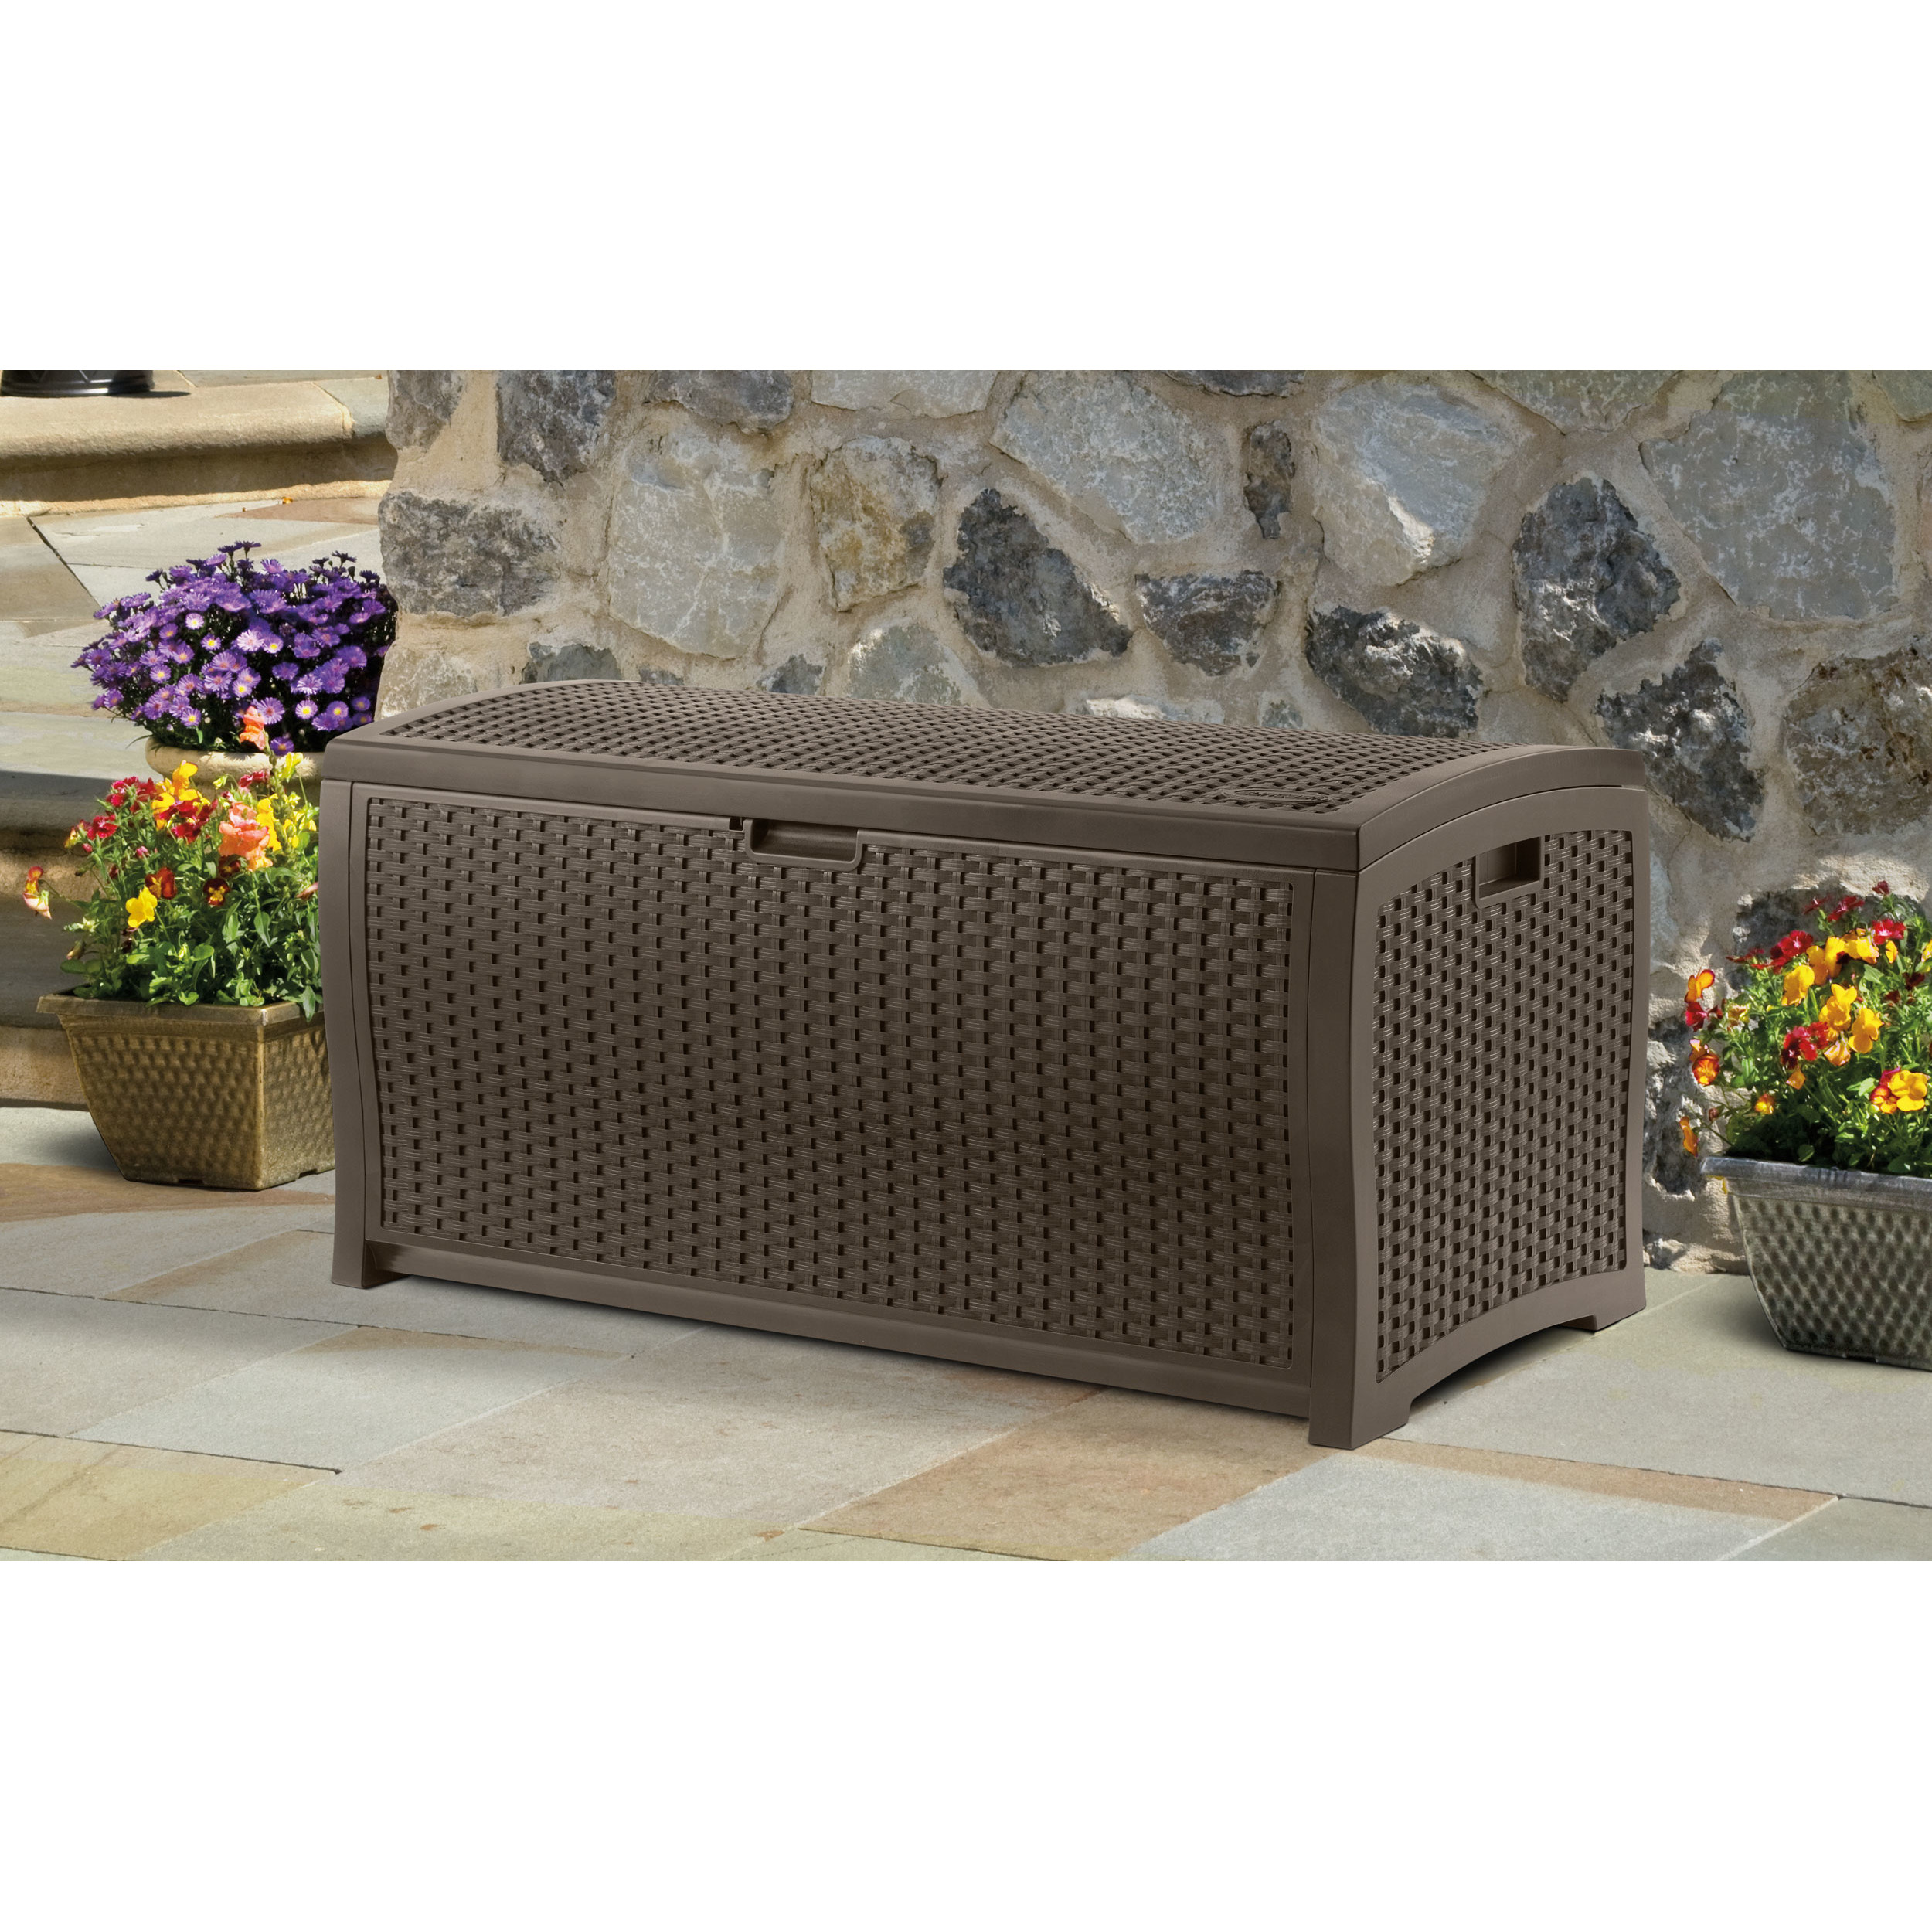 Wonderful Contemporary QUICK VIEW Patio Cushion Storage